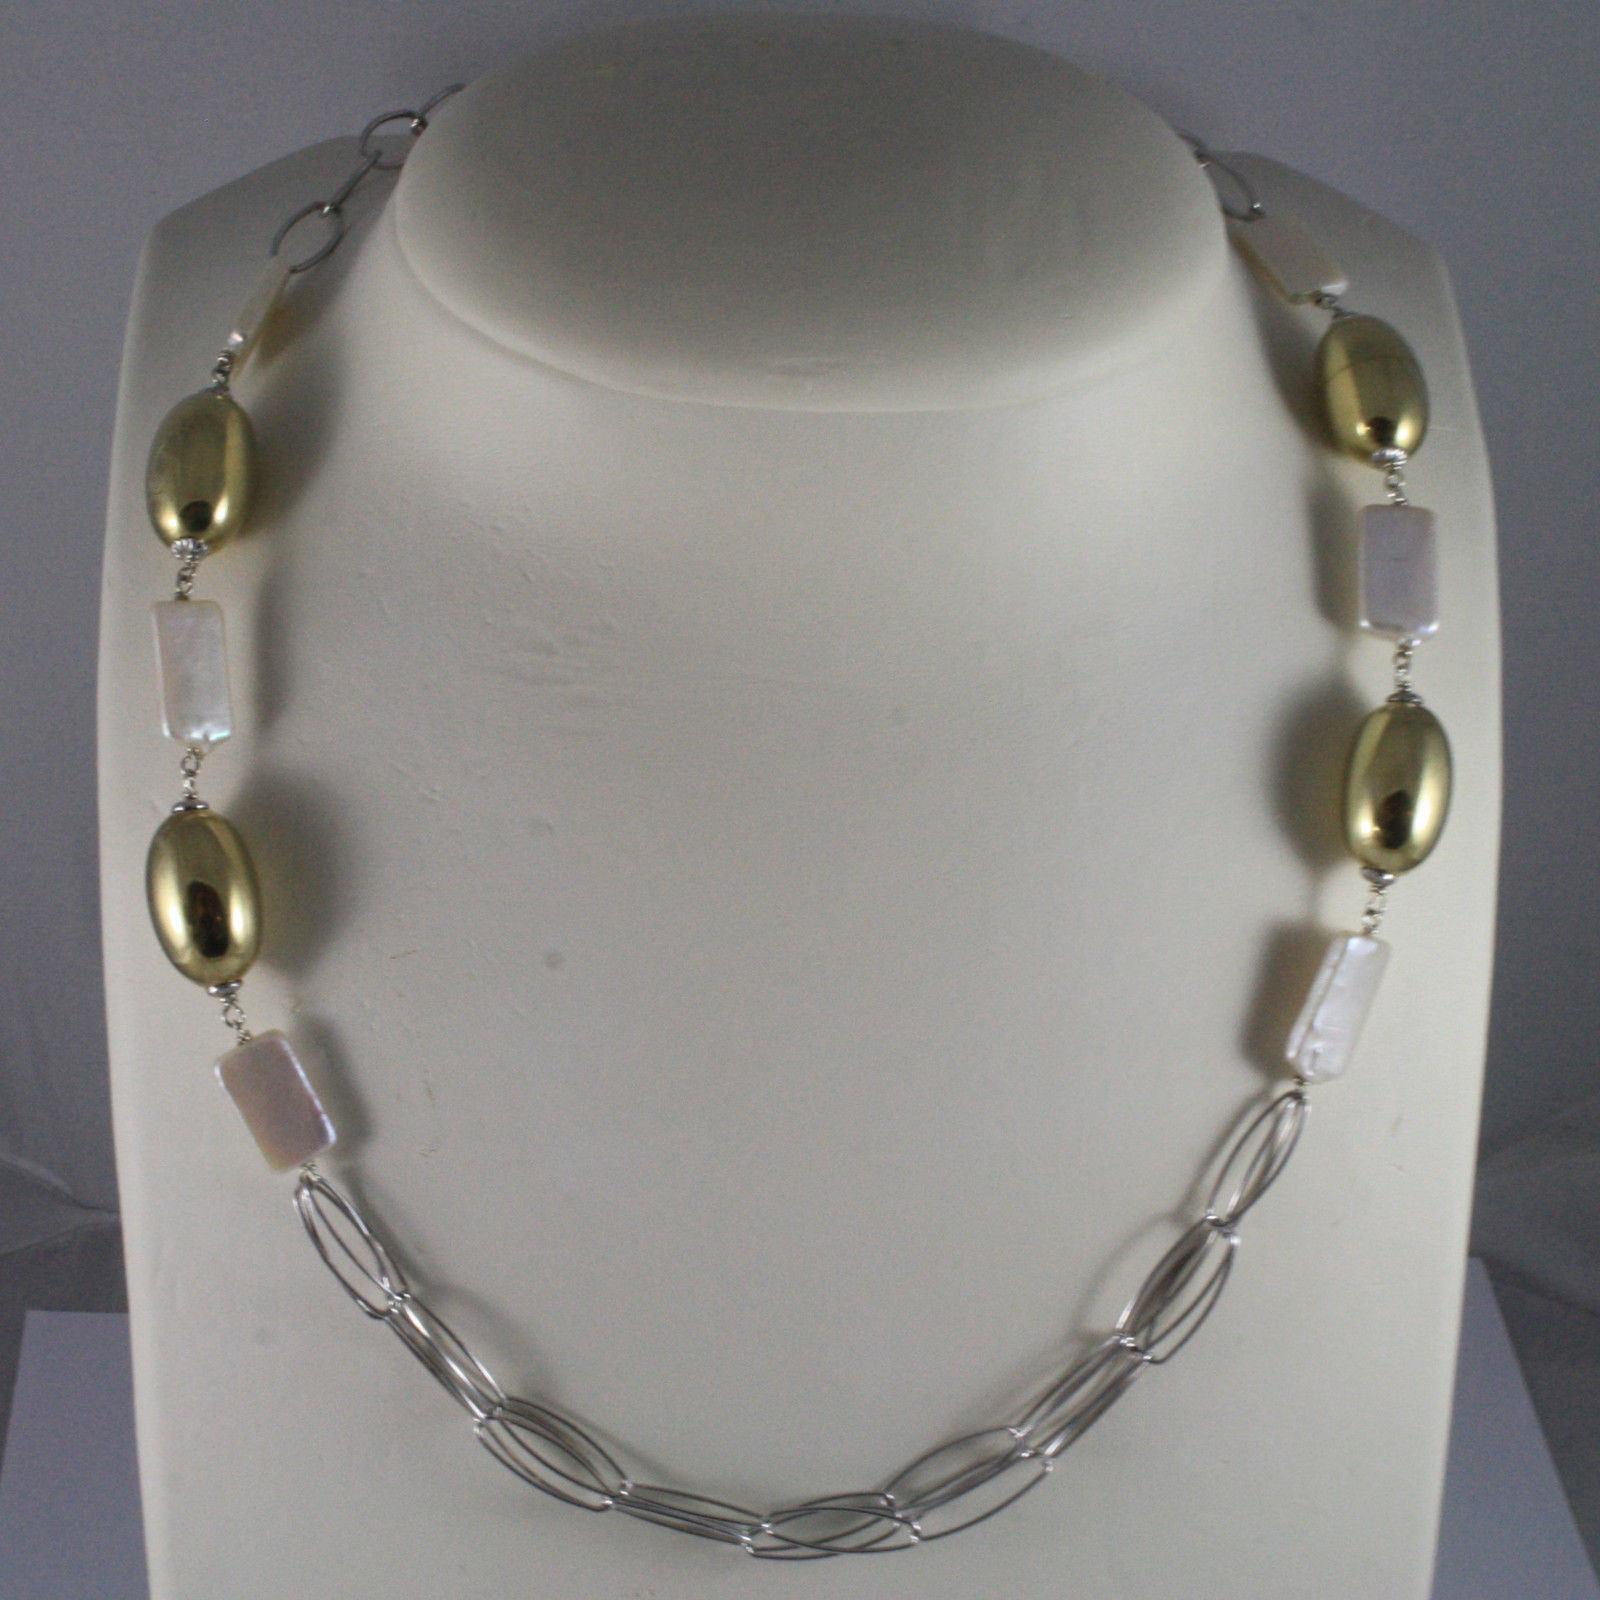 .925 SILVER RHODIUM NECKLACE WITH RECTANGULAR WHITE PEARLS AND GOLDEN OVALS